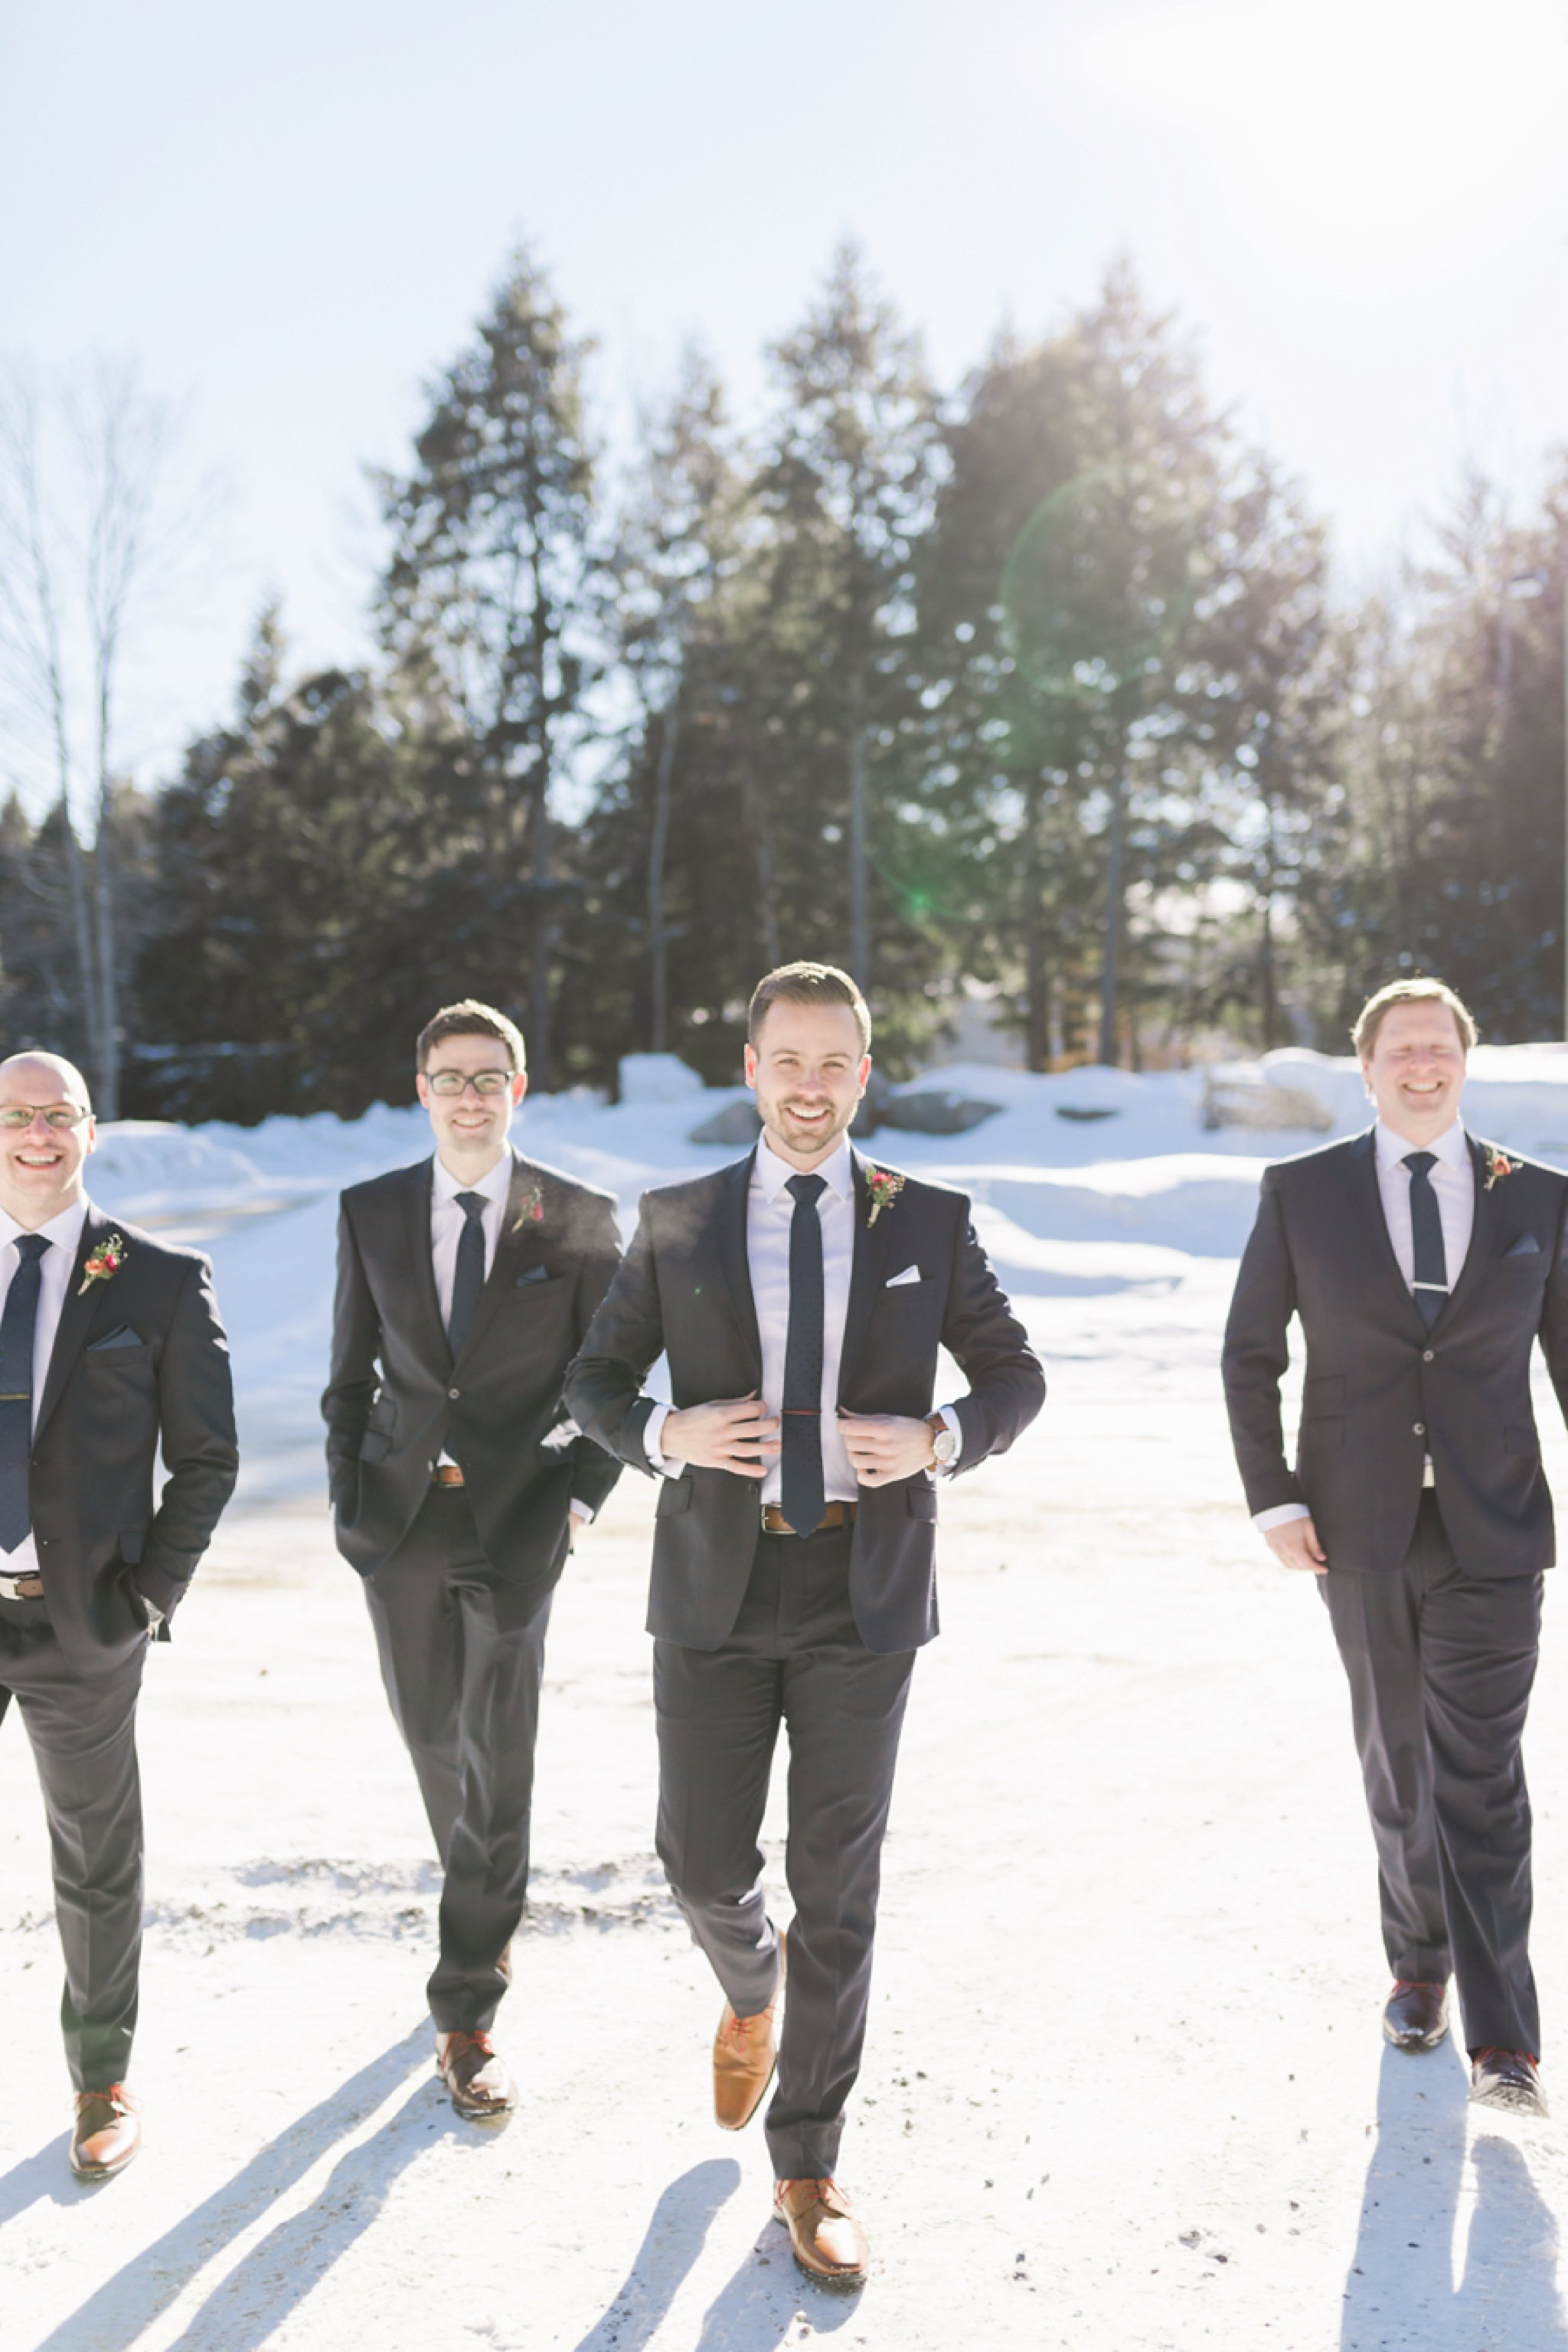 Groomsmen walk in the snow at the Winter wedding at Le Belvedere